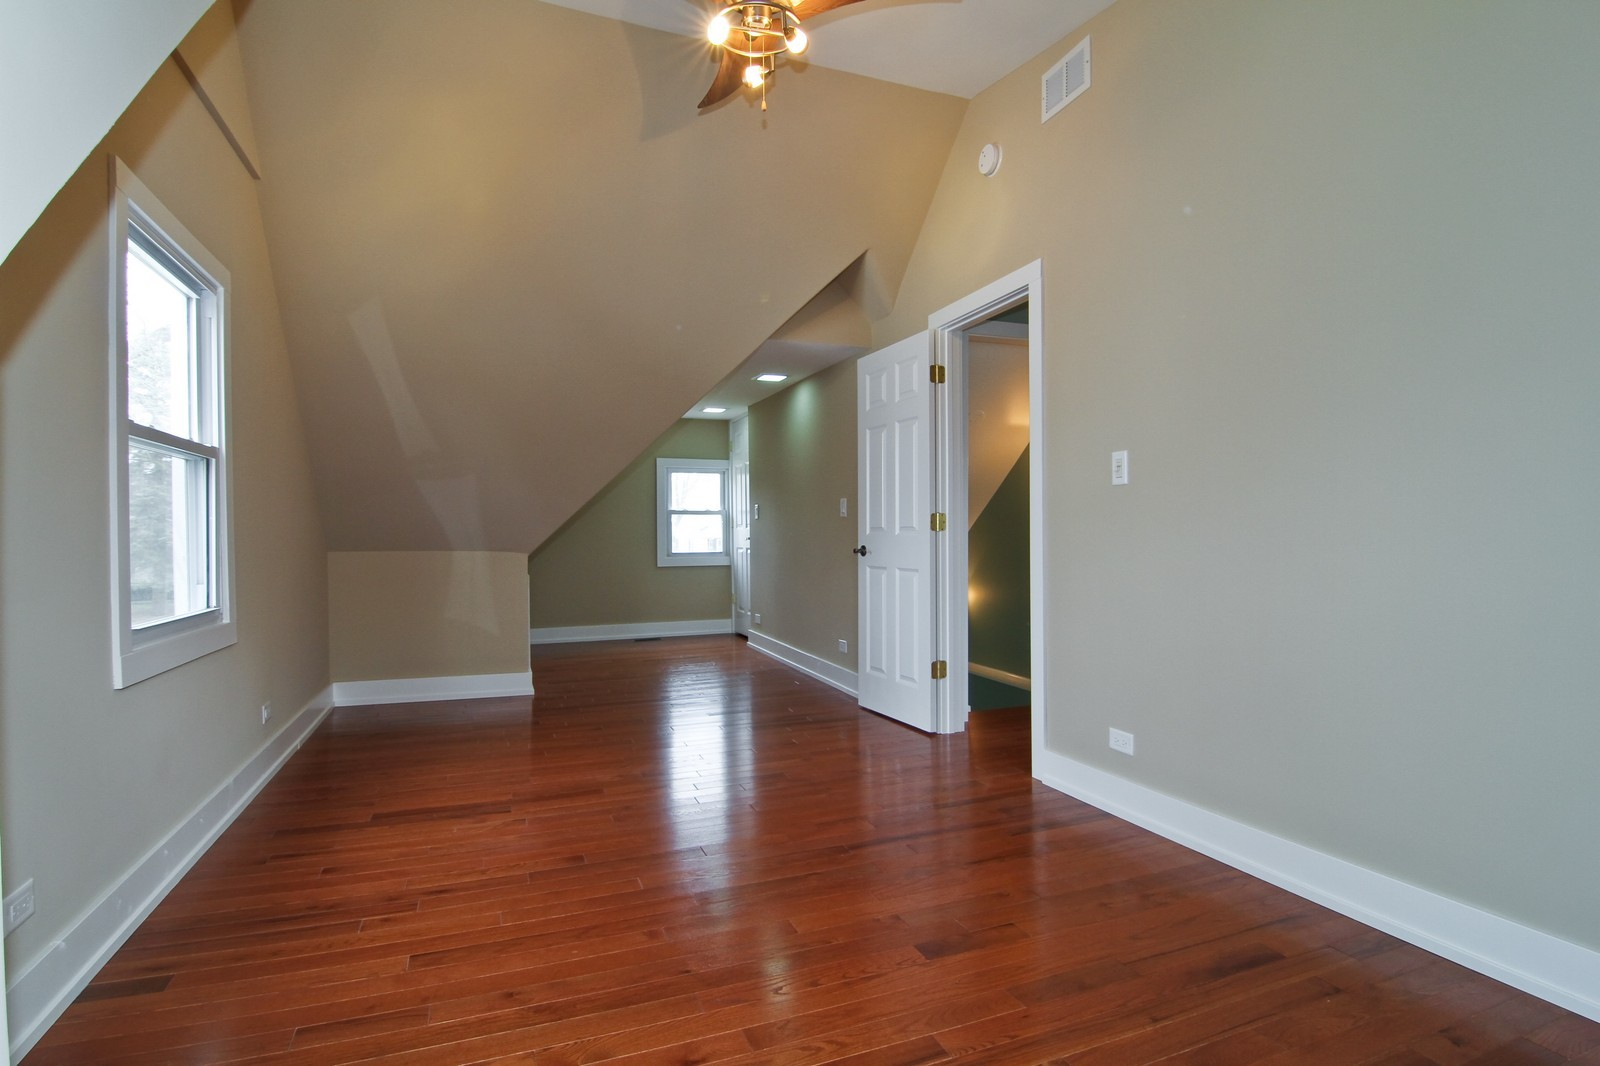 Real Estate Photography - 406 N Garfield St, Lombard, IL, 60148 - Bedroom